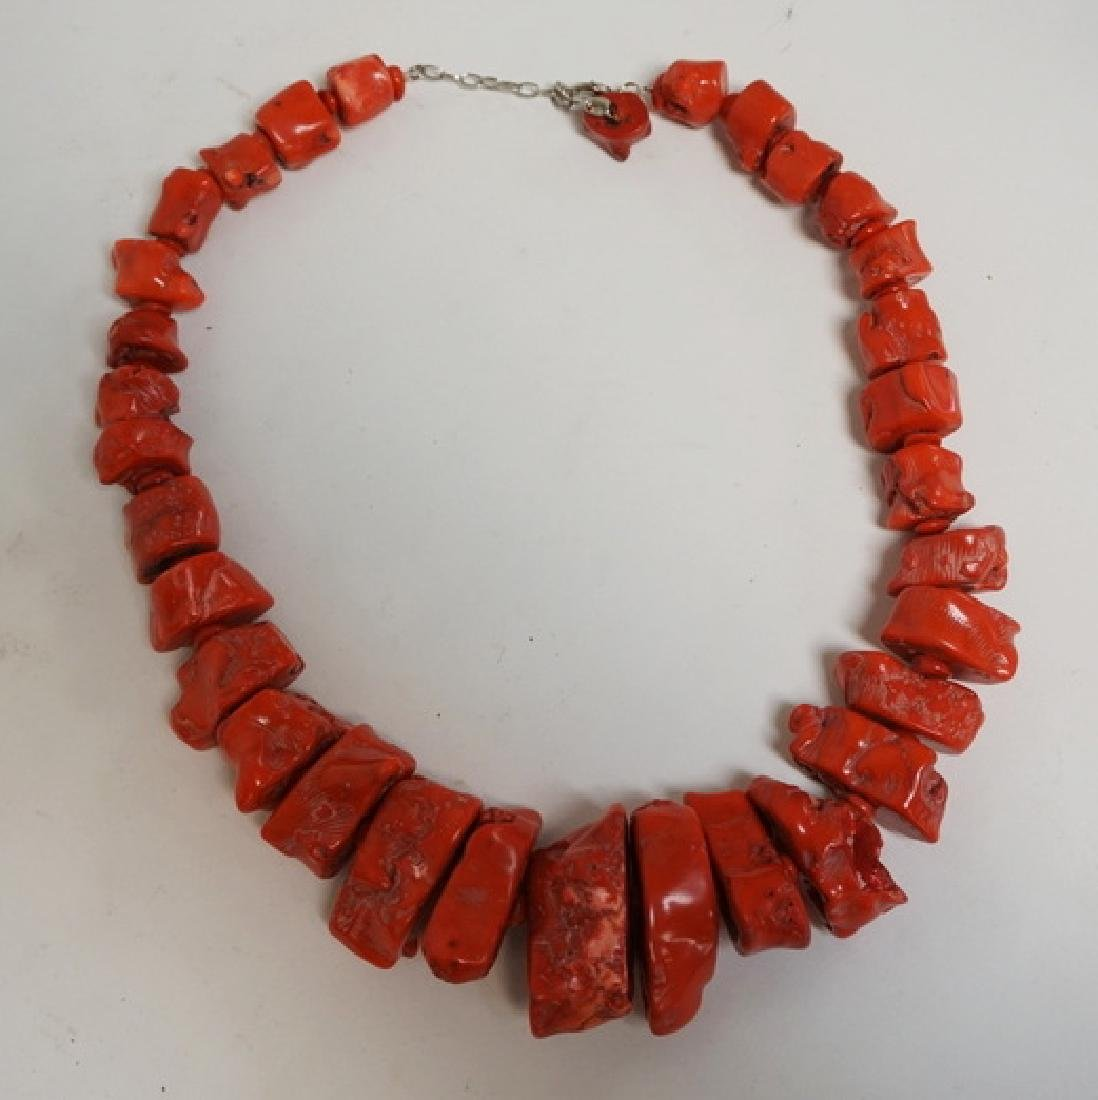 RED CORAL NECKLACE WITH VERY LARGE CORAL CHUNKS. 24